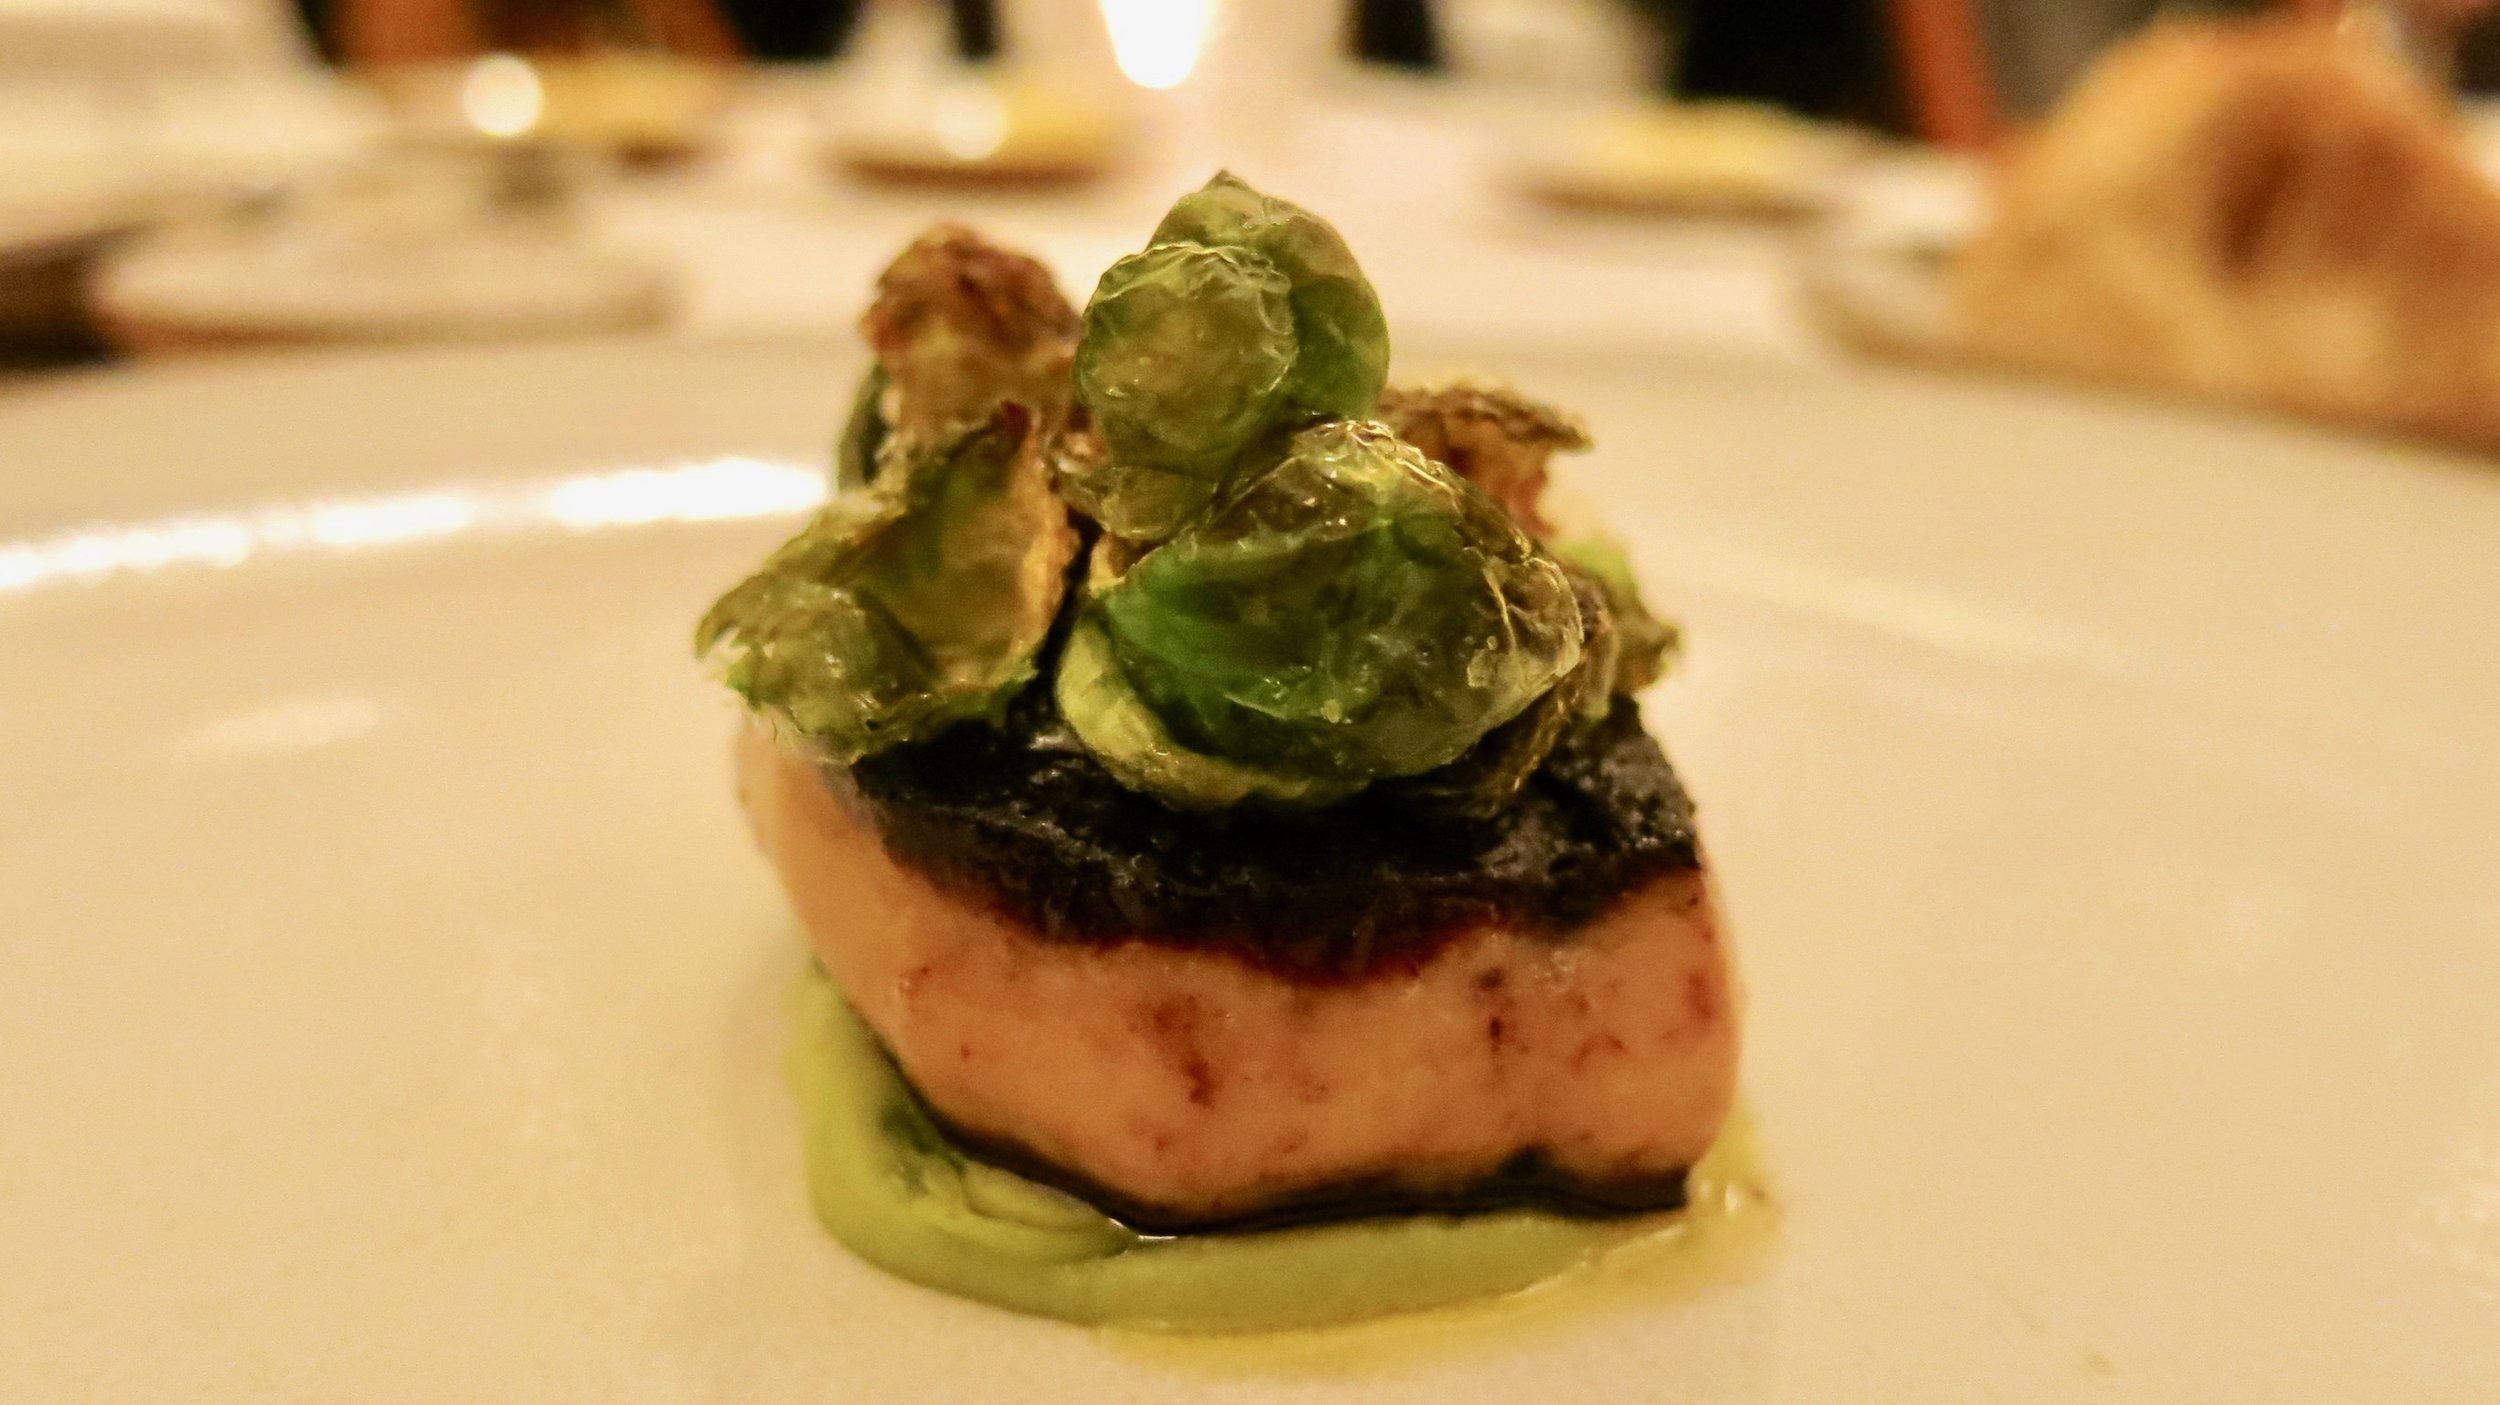 6th Course - Foie Gras: Served with Smoked Eel and Brussels Sprouts (Outstanding Dish)